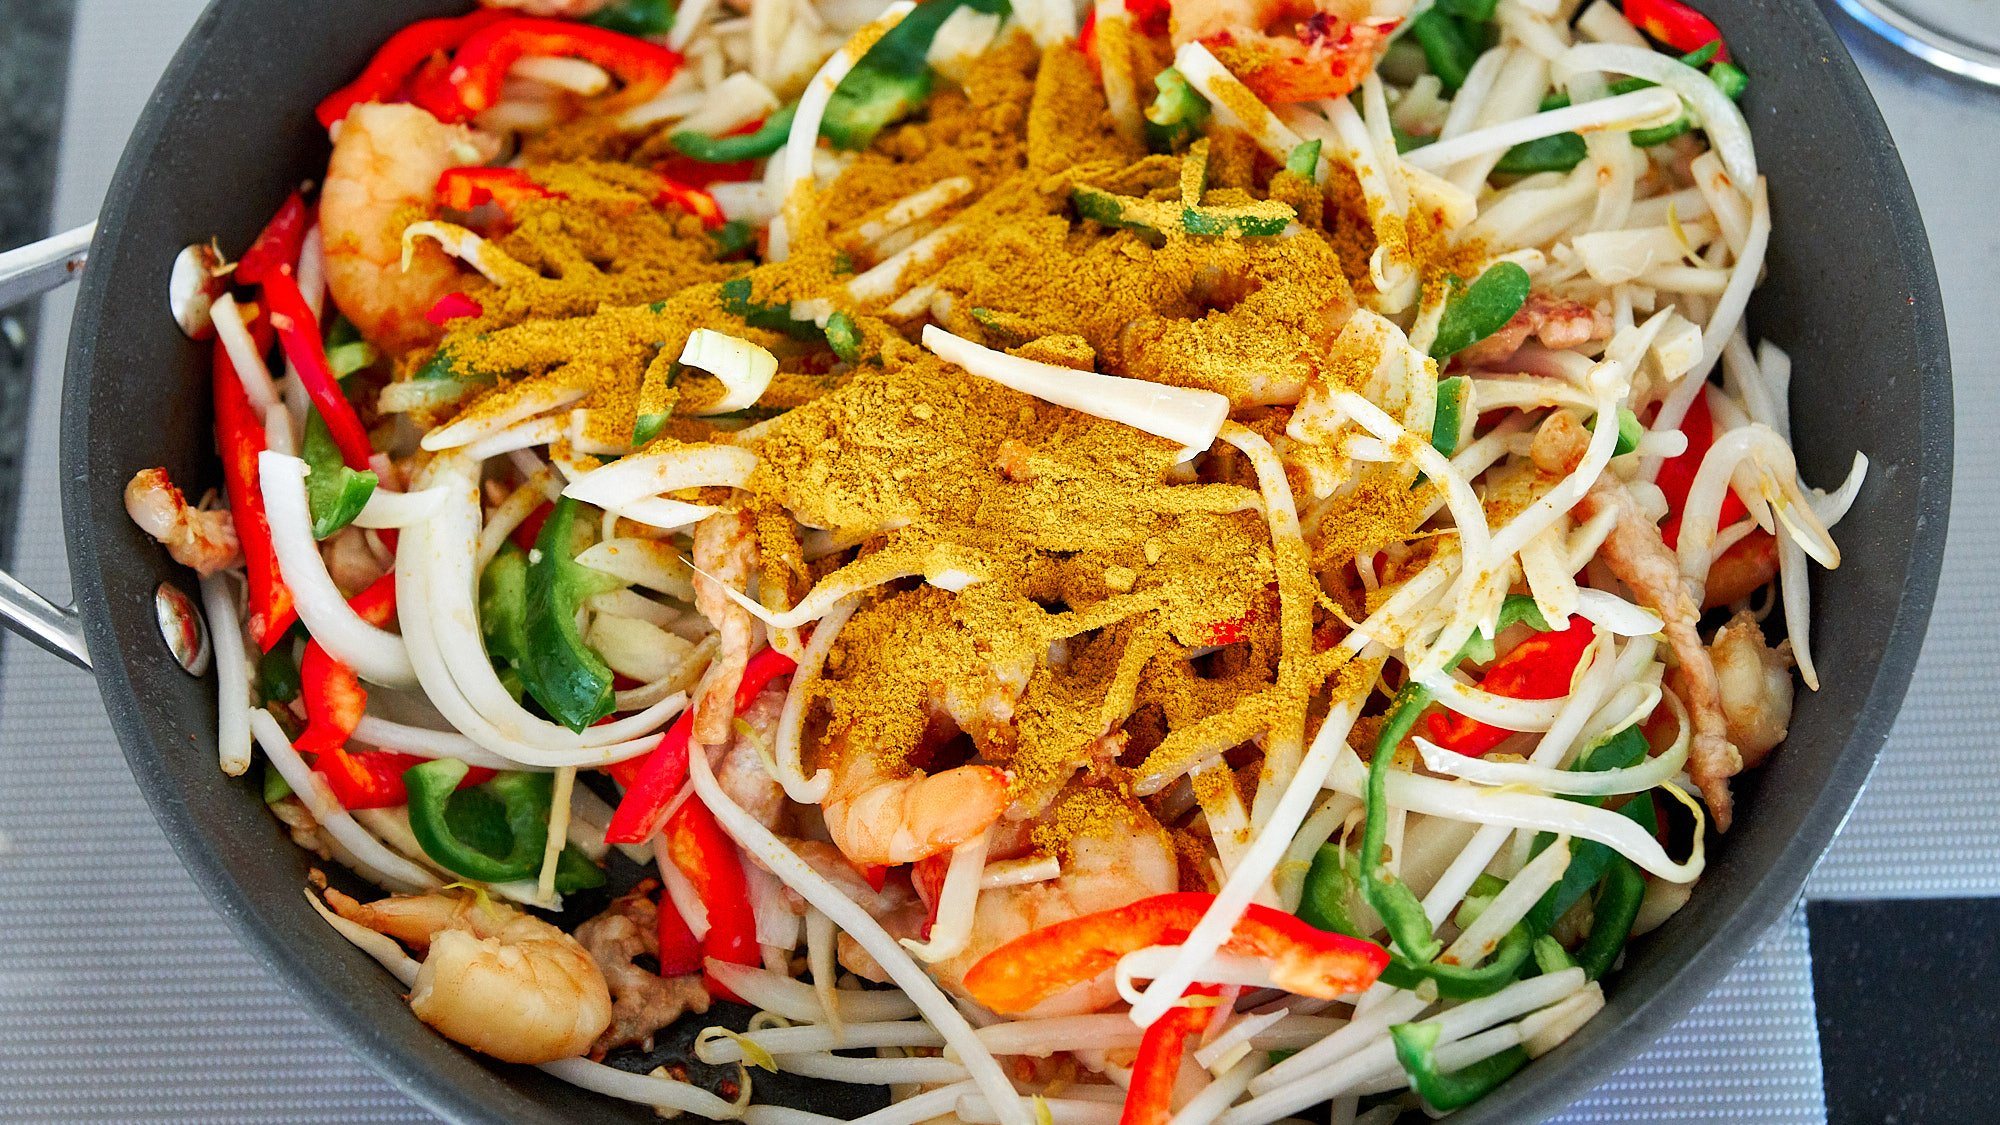 Curry powder is what gives Singapore noodles their yellow color and spicy taste.